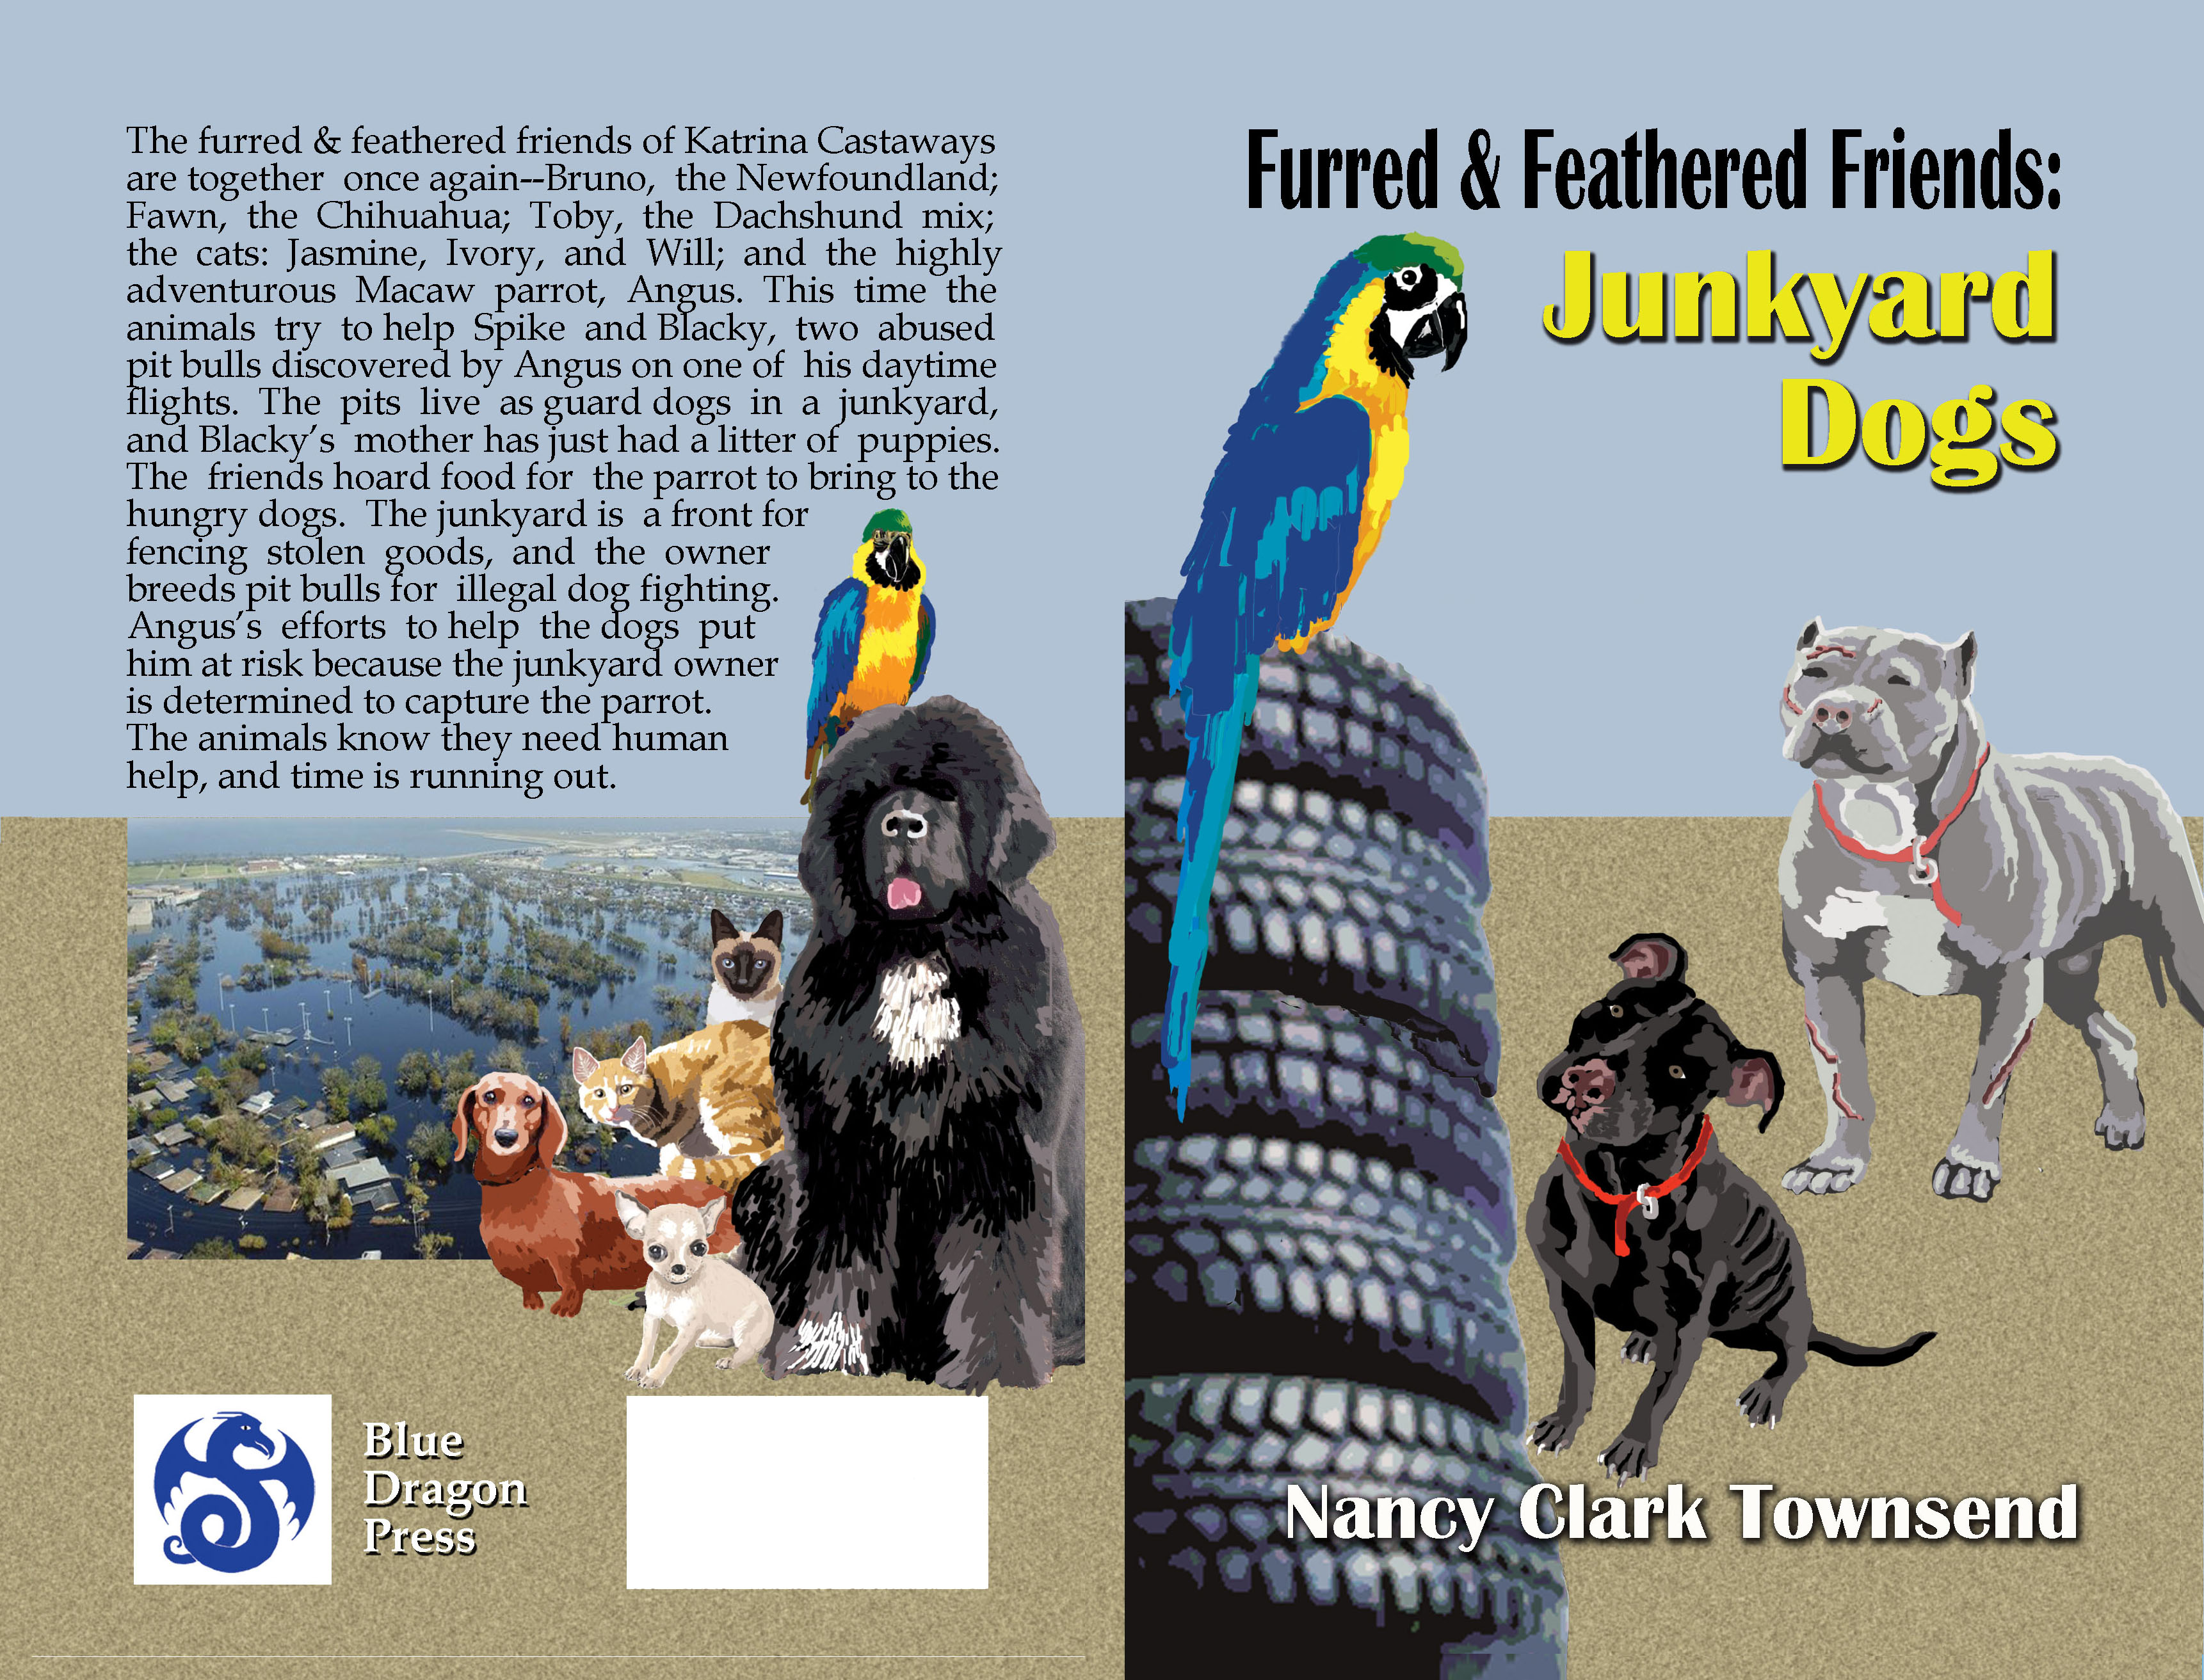 Junkyard Dogs cover